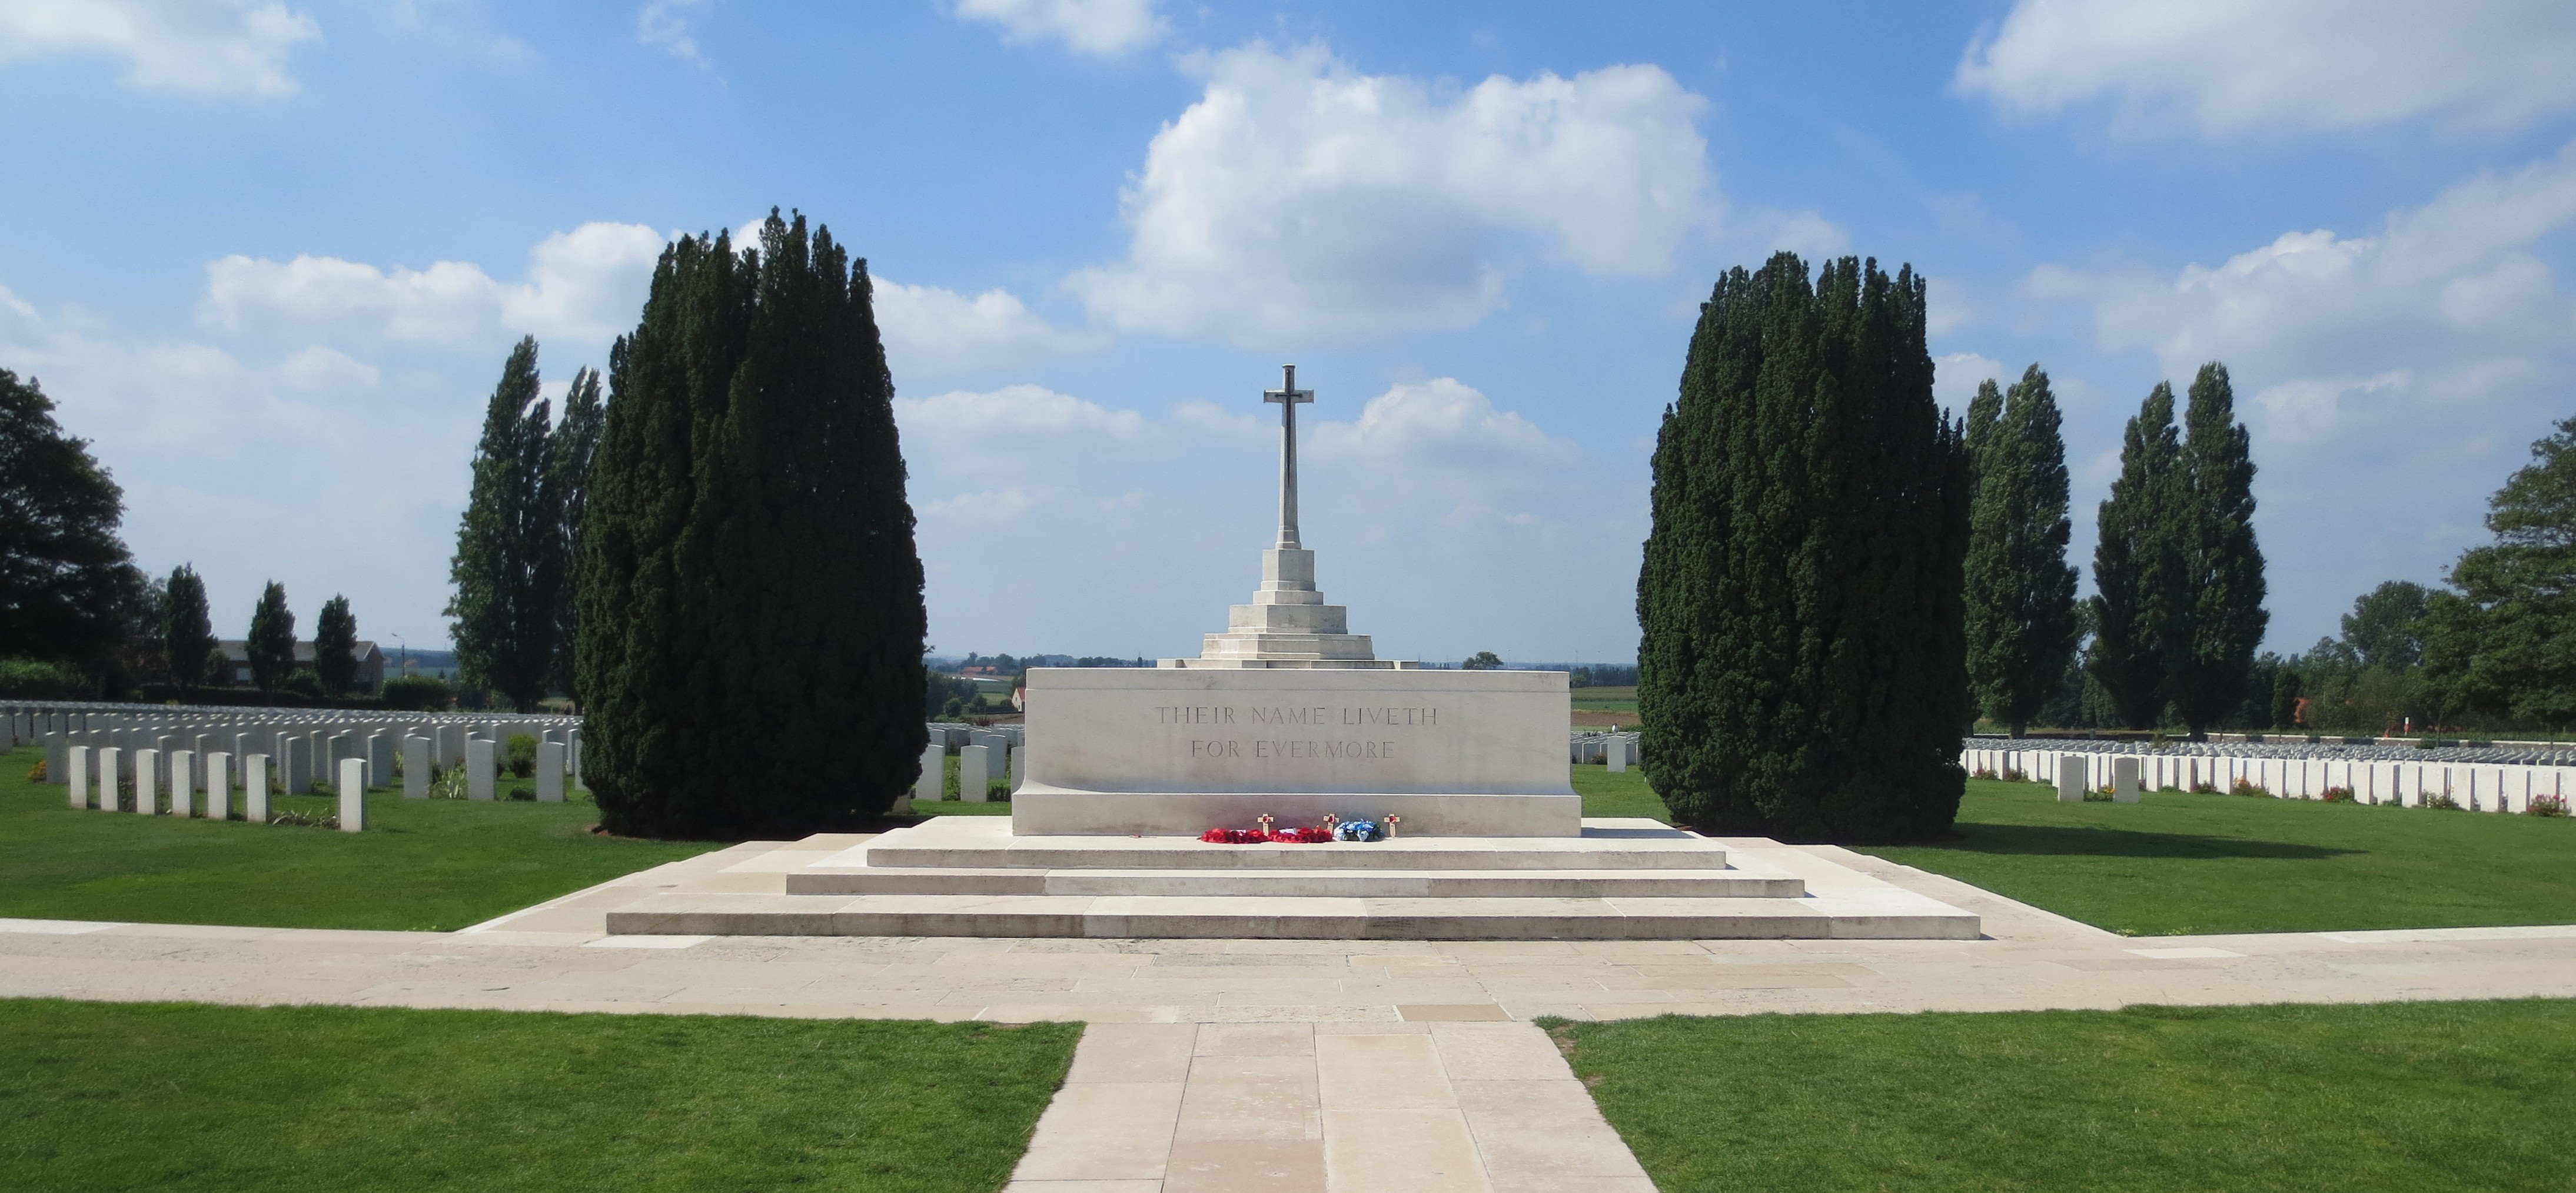 Tyne Cot Cemetery is the resting place of 11,954 soldiers of the Commonwealth Forces. This is the largest number of burials contained in any Commonwealth cemetery of either the First or Second World War. It is the largest Commonwealth military cemetery in the world.